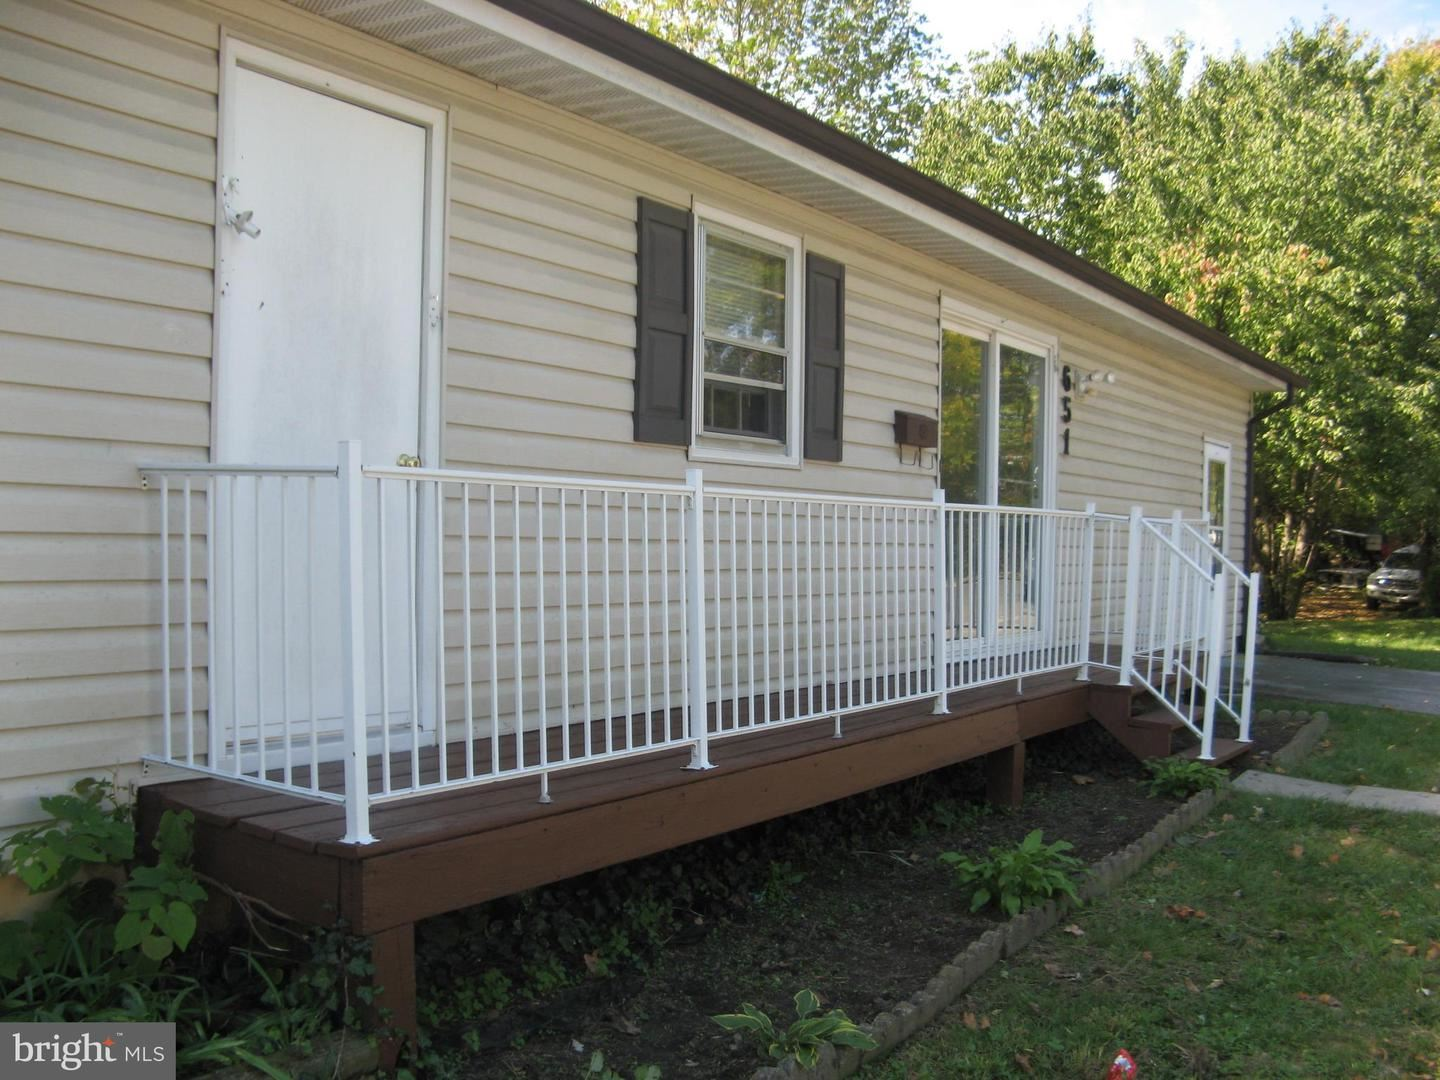 Photo of 651 E LEICESTER ST, WINCHESTER, VA 22601 (MLS # VAWI115278)